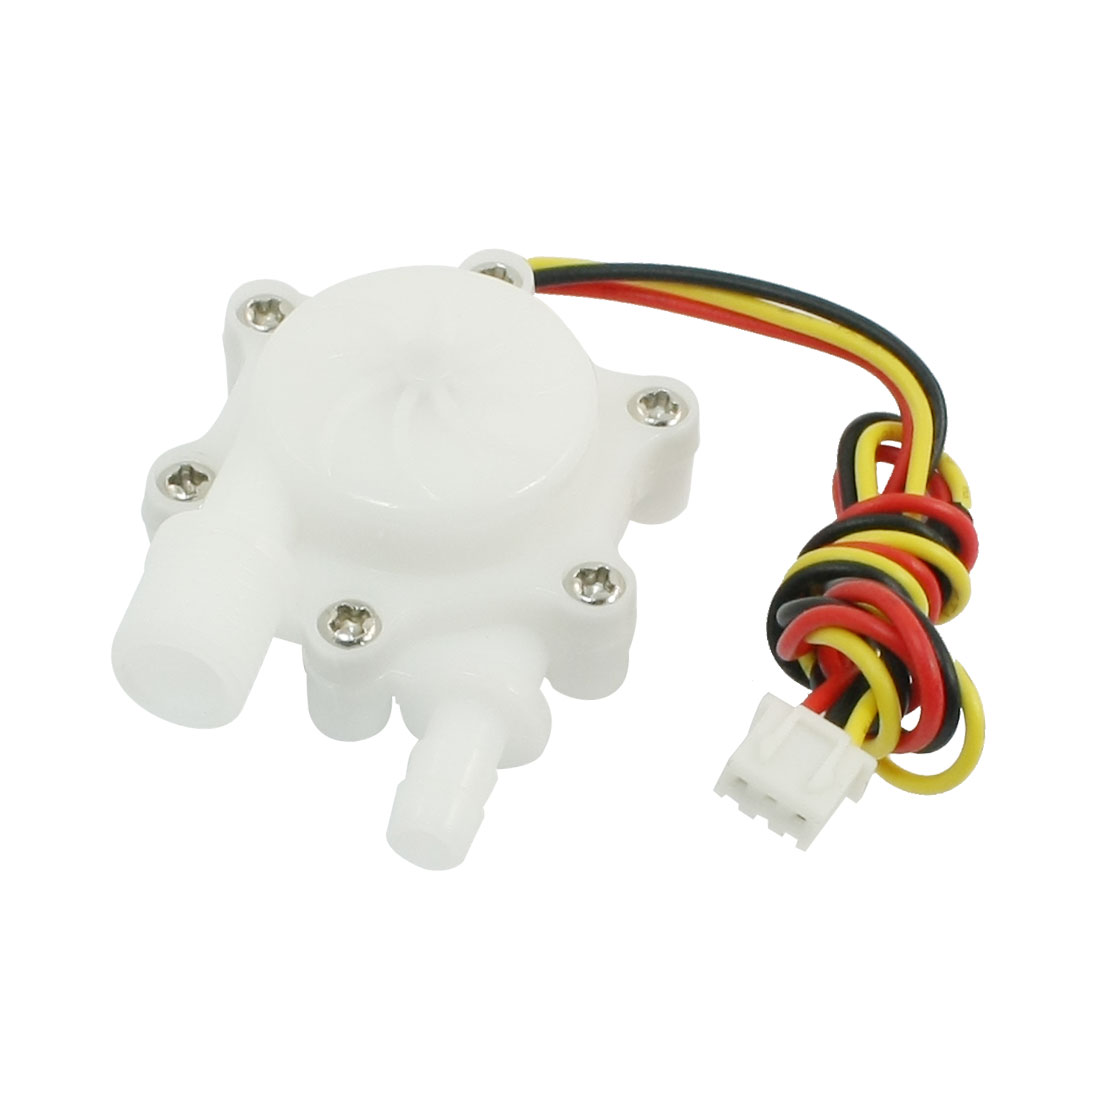 0.15L/min -1.5 L/min G1/4 Hall Effect Flow Sensor Counter for Water Heater